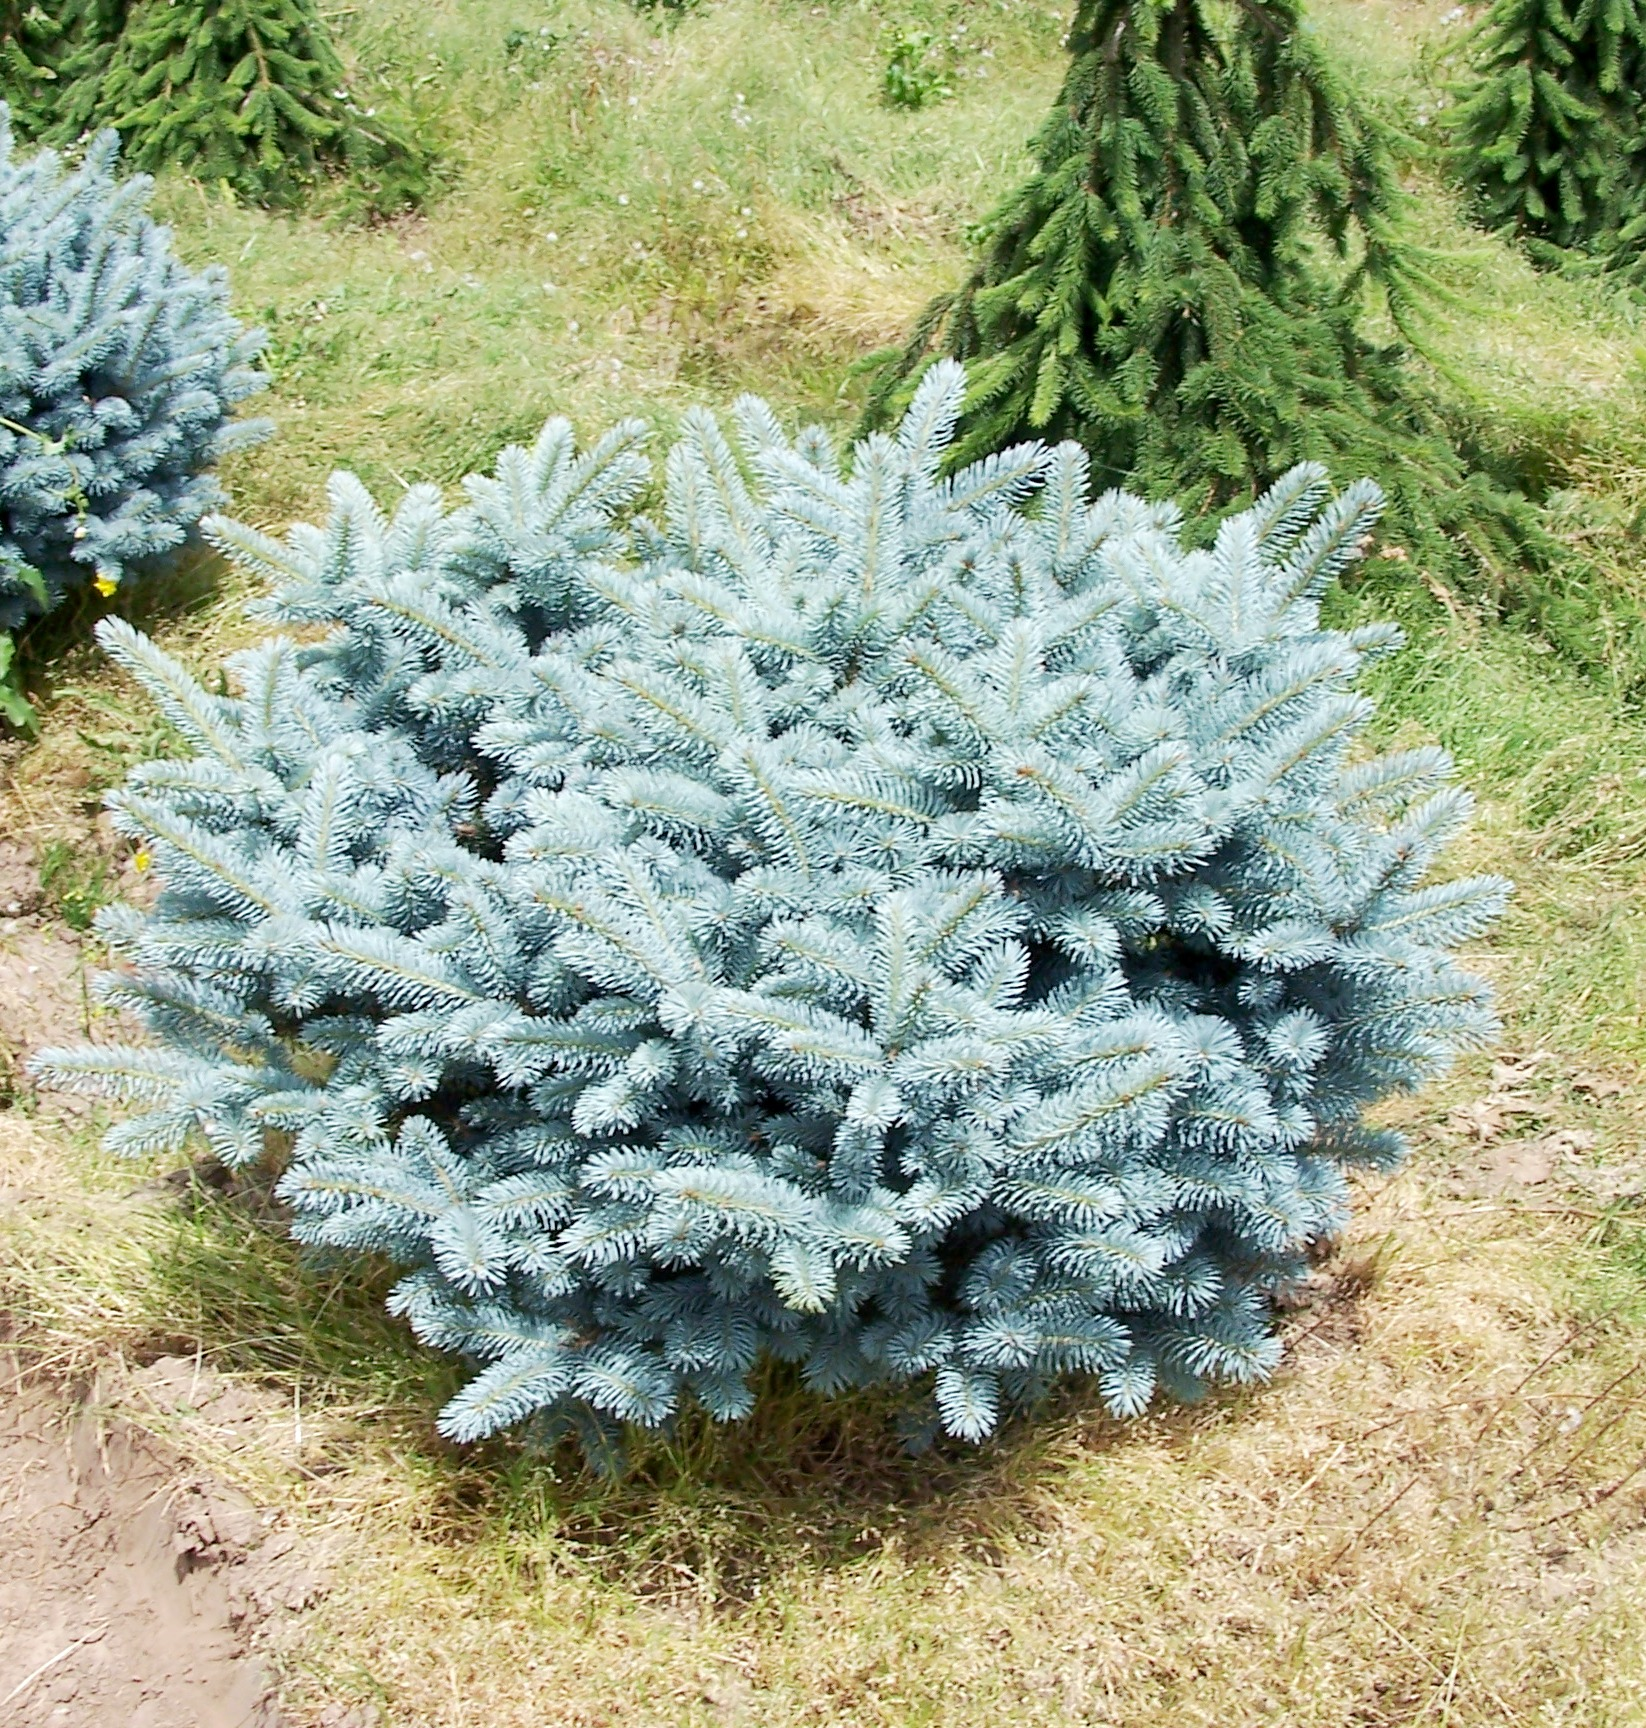 Picea Pungens Globosa Vancouver Island Grows